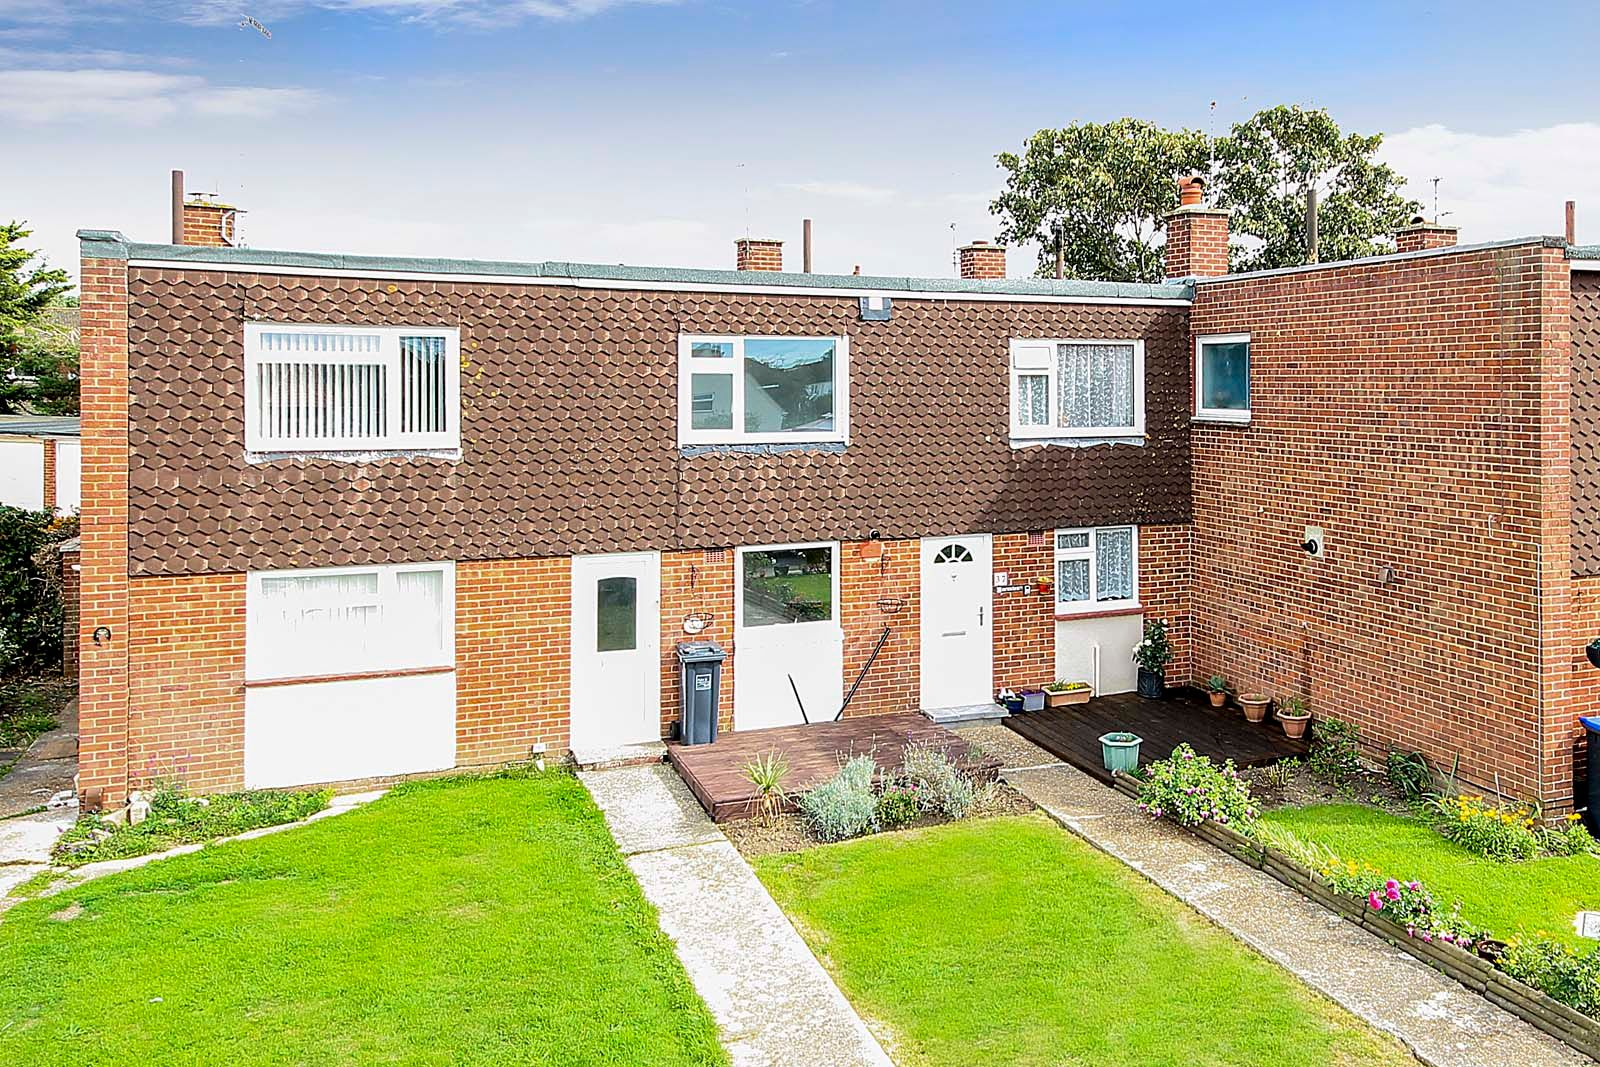 2 bed house for sale in Church Way COMP Jan 2019 1